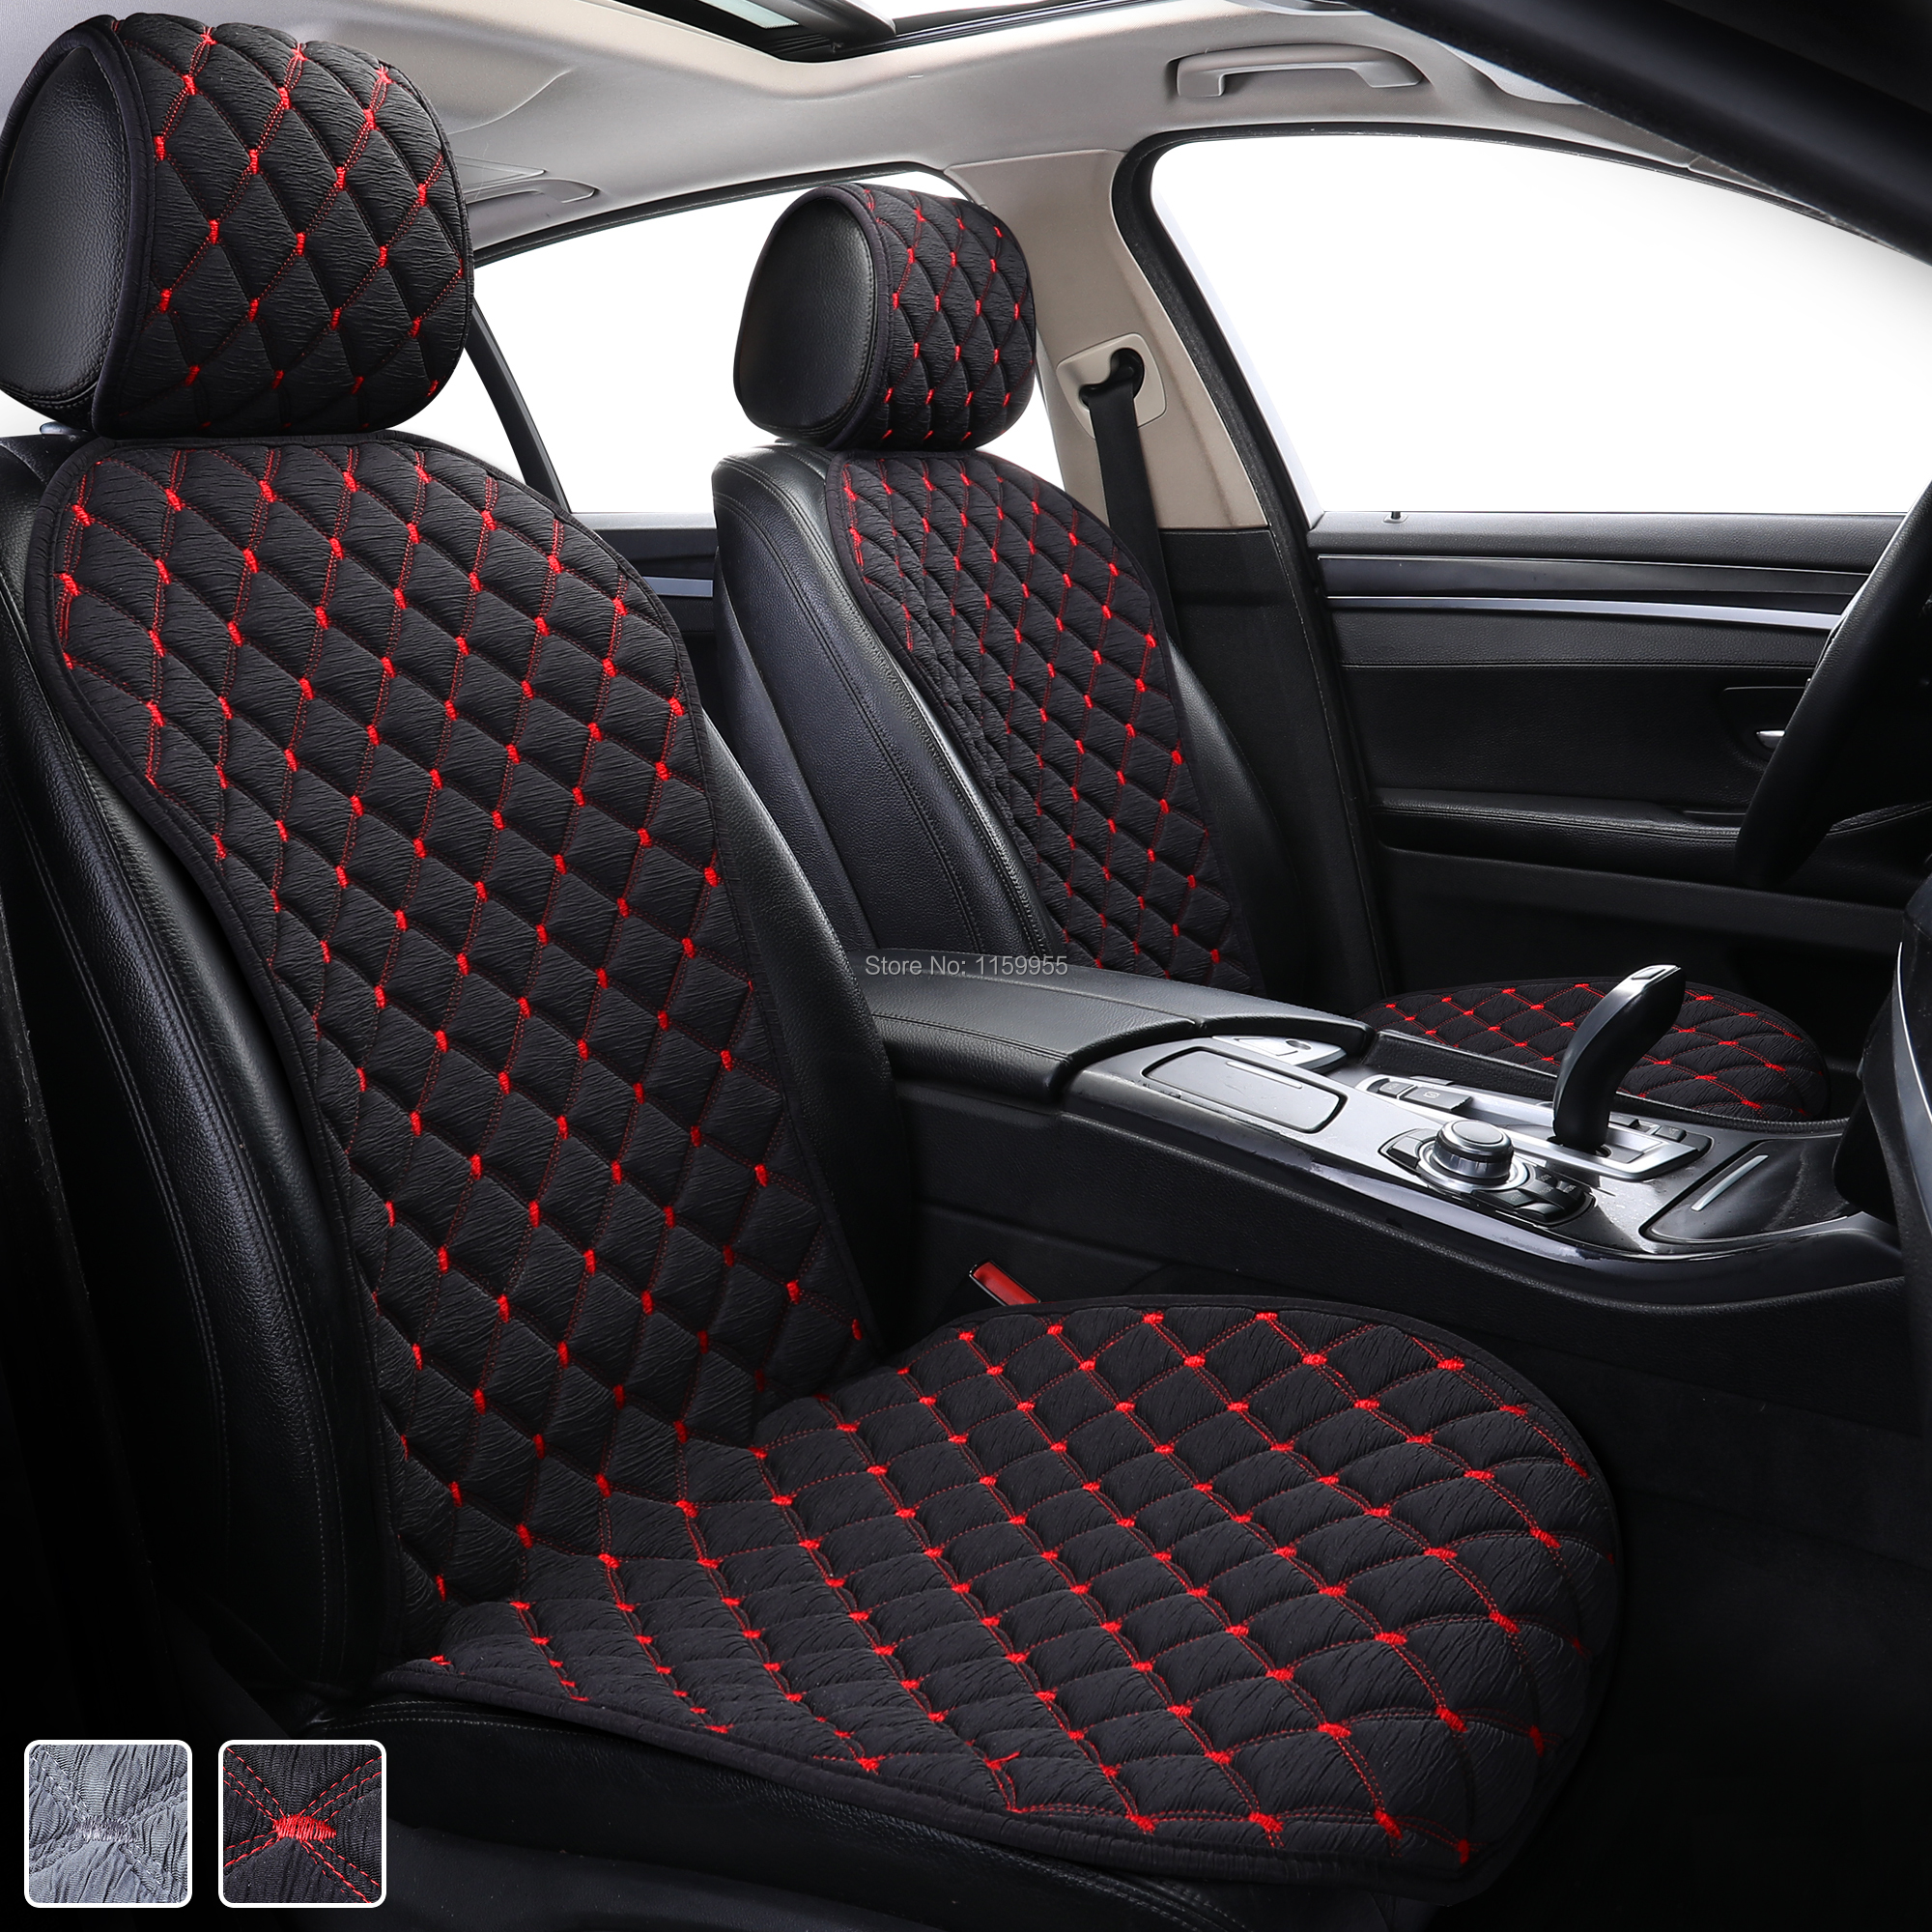 Car covered seat Protect car seat cushion Universal Car seat covers Fit Most Automotive interior Car front seat pad